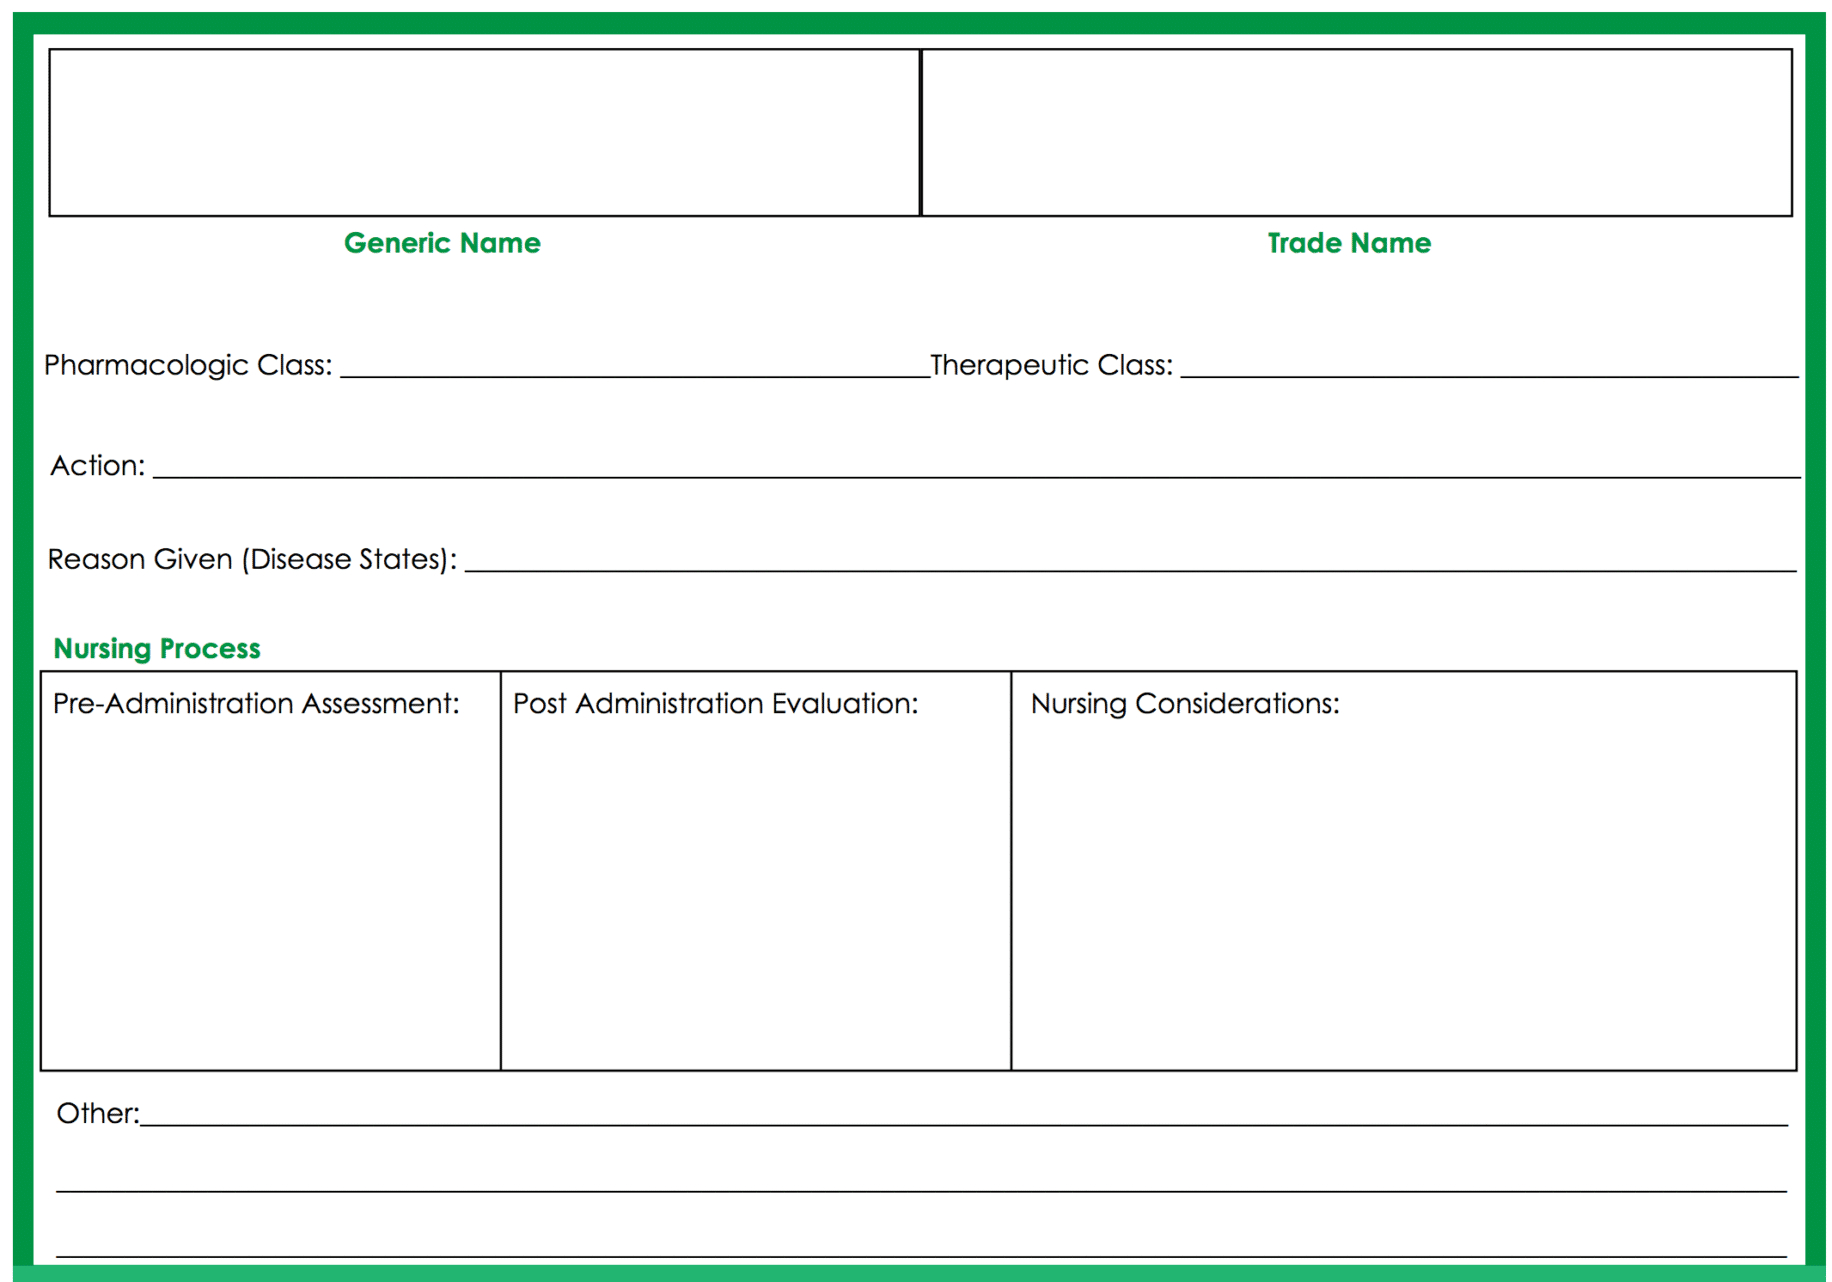 Med Card Template - Zohre.horizonconsulting.co In Med Cards Template